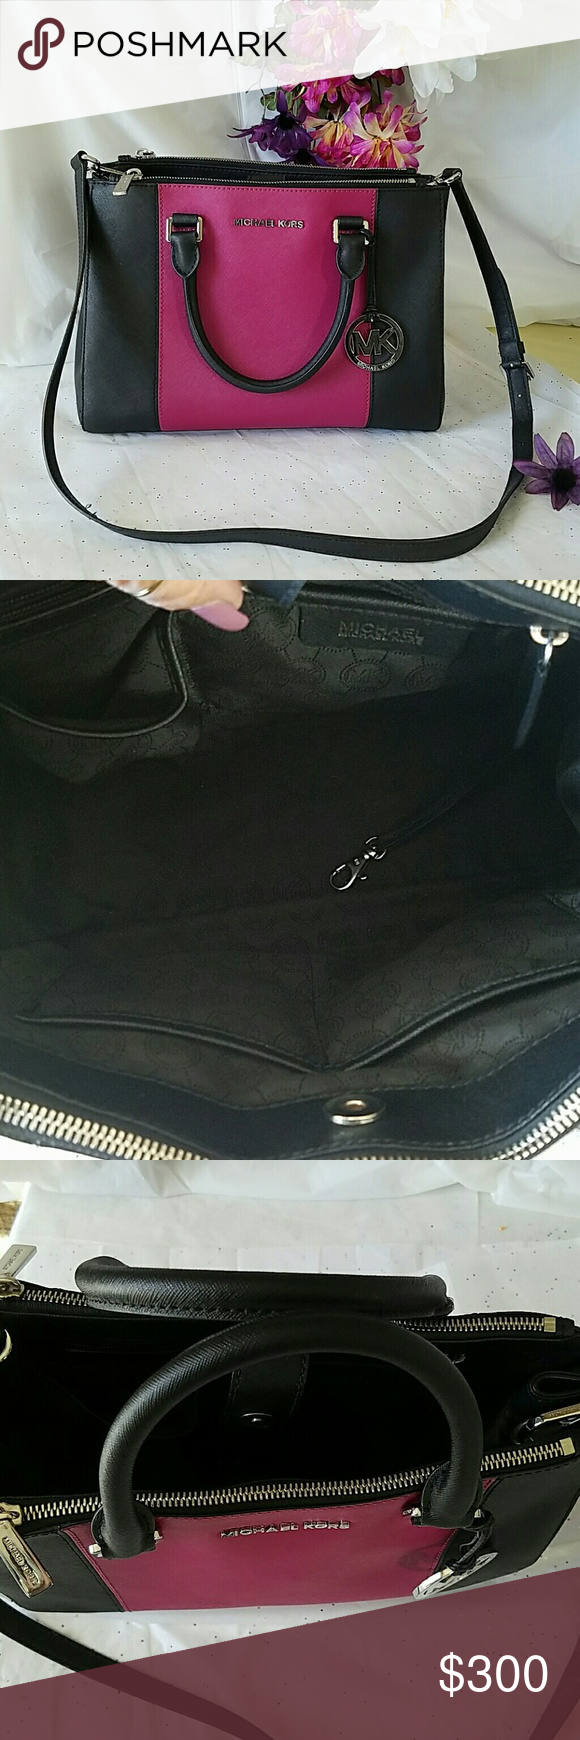 Michael Kors All I can say is WOW! This bag is absolutely gorgeous and spotless.  Authentic Michael Kors with strap for crossbody  This is black and a dark pink, stunning color combination!  Comes with dust bag  TV $400 Michael Kors Bags Crossbody Bags